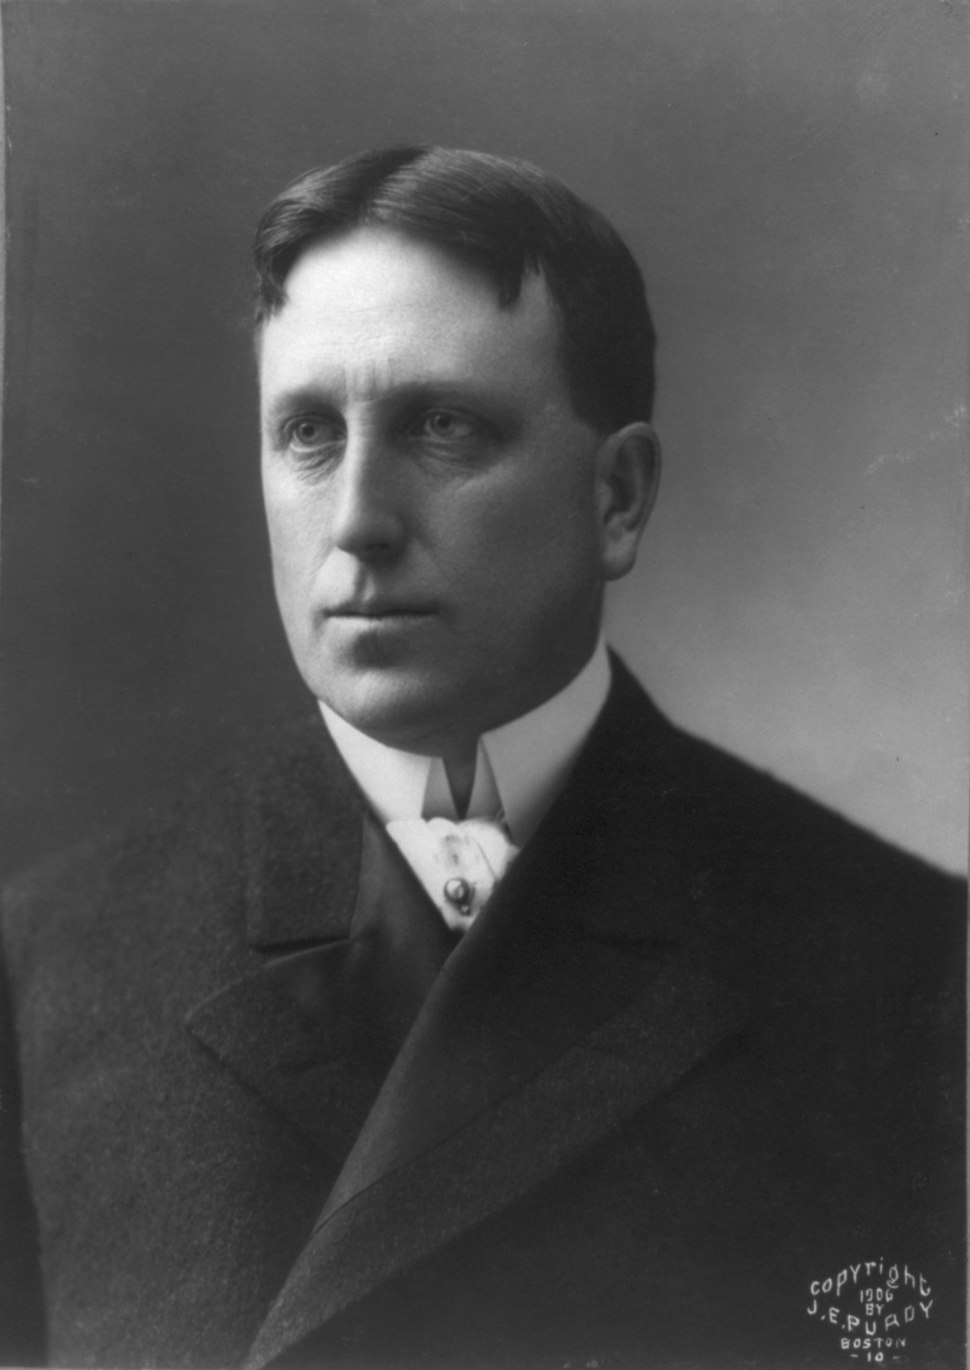 William Randolph Hearst cph 3a49373